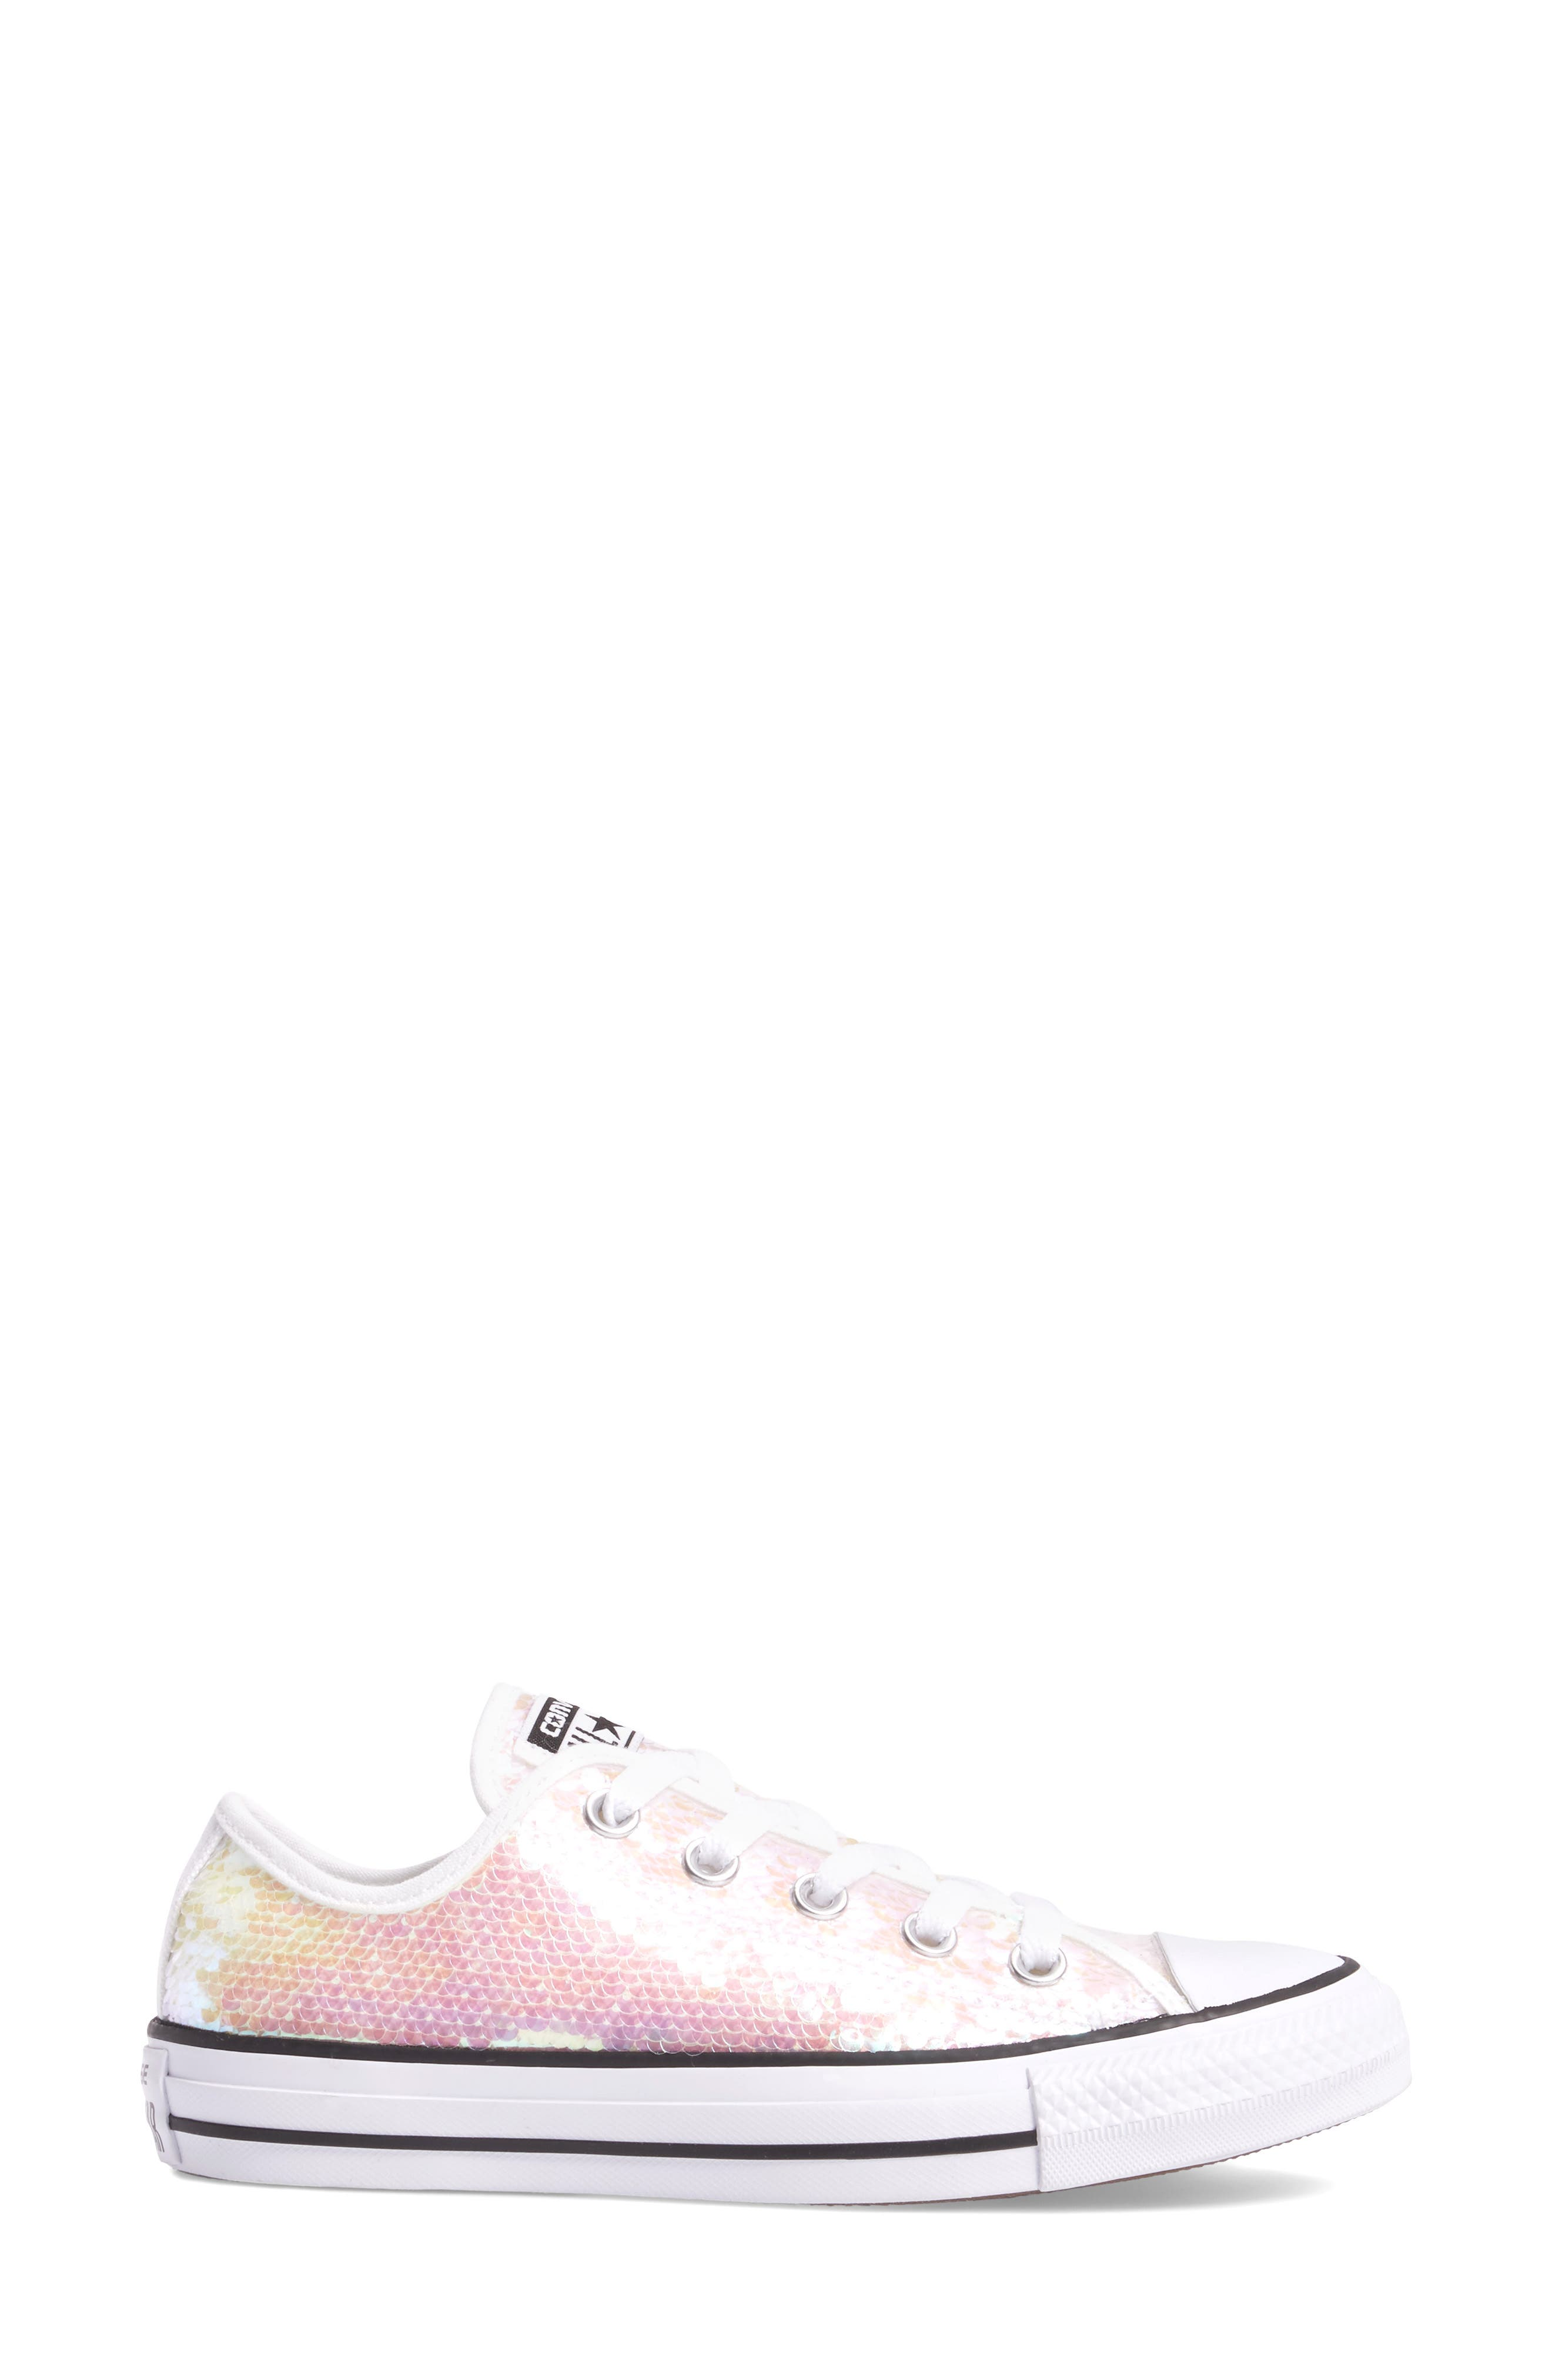 Alternate Image 3  - Converse Chuck Taylor® All Star® Sequin Low Top Sneaker (Women)